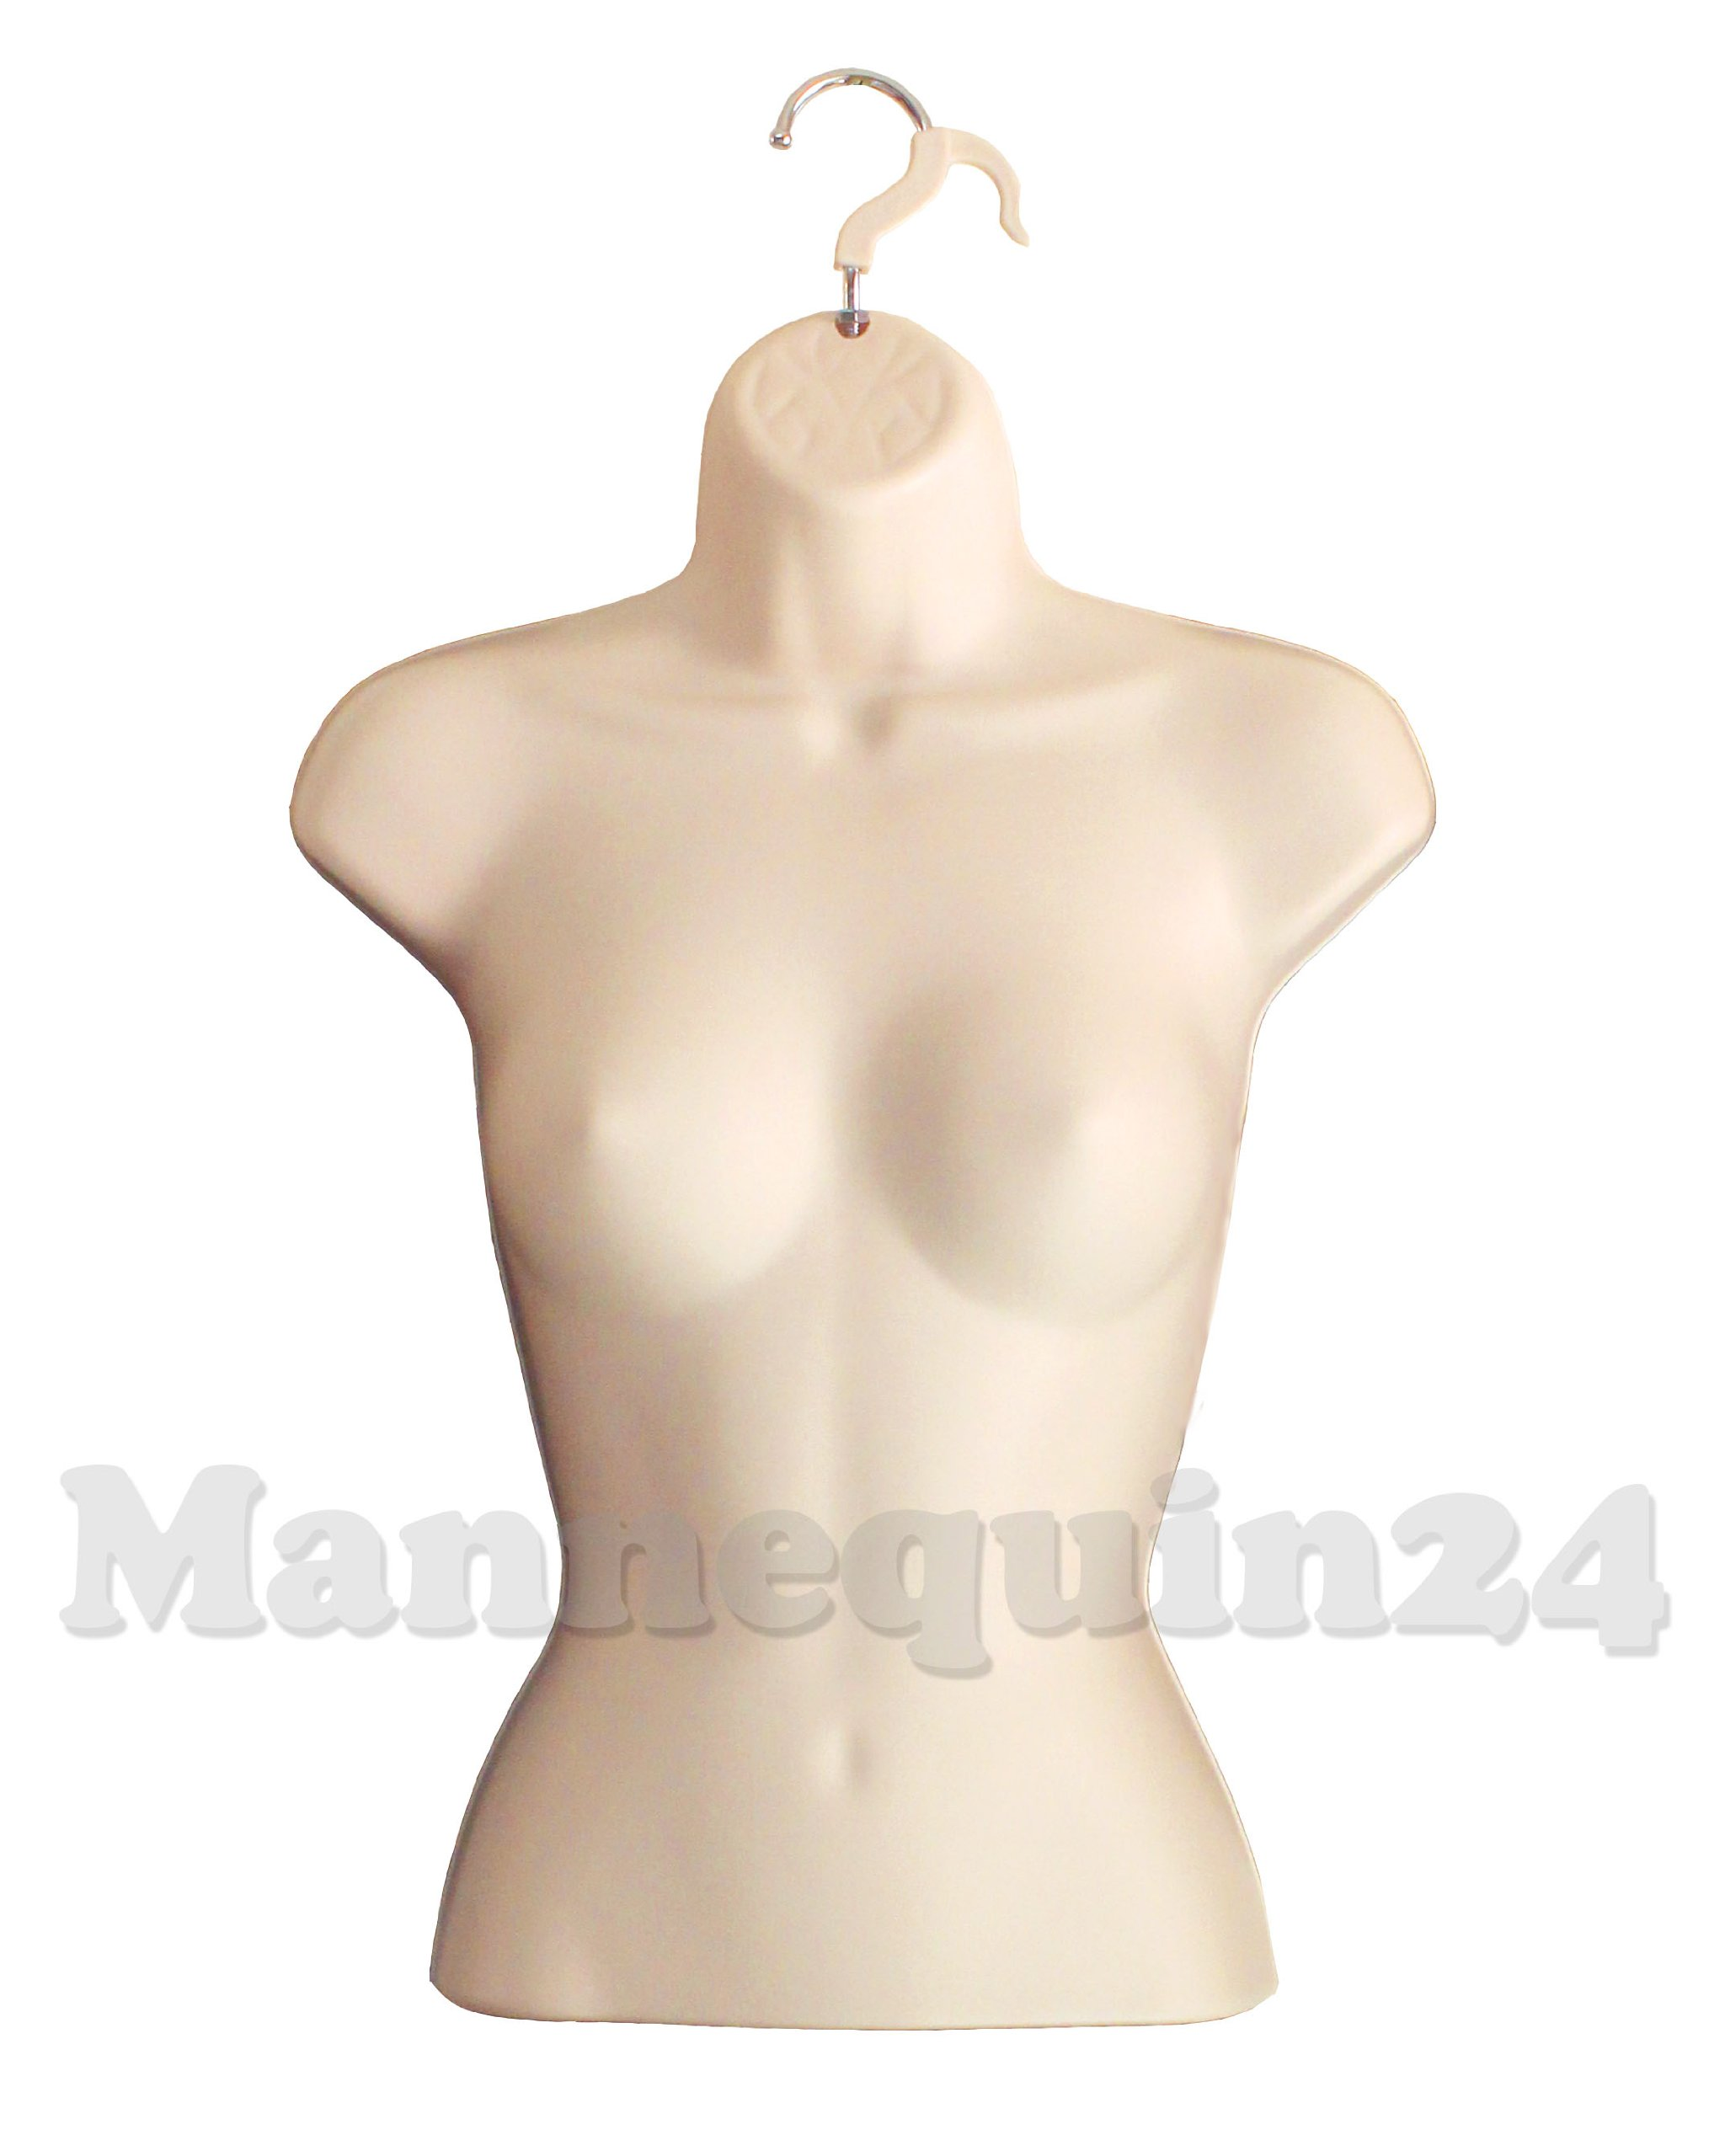 Flesh Female Torso Mannequin Form (Hard Plastic / Waist Long) with Hook for Hanging